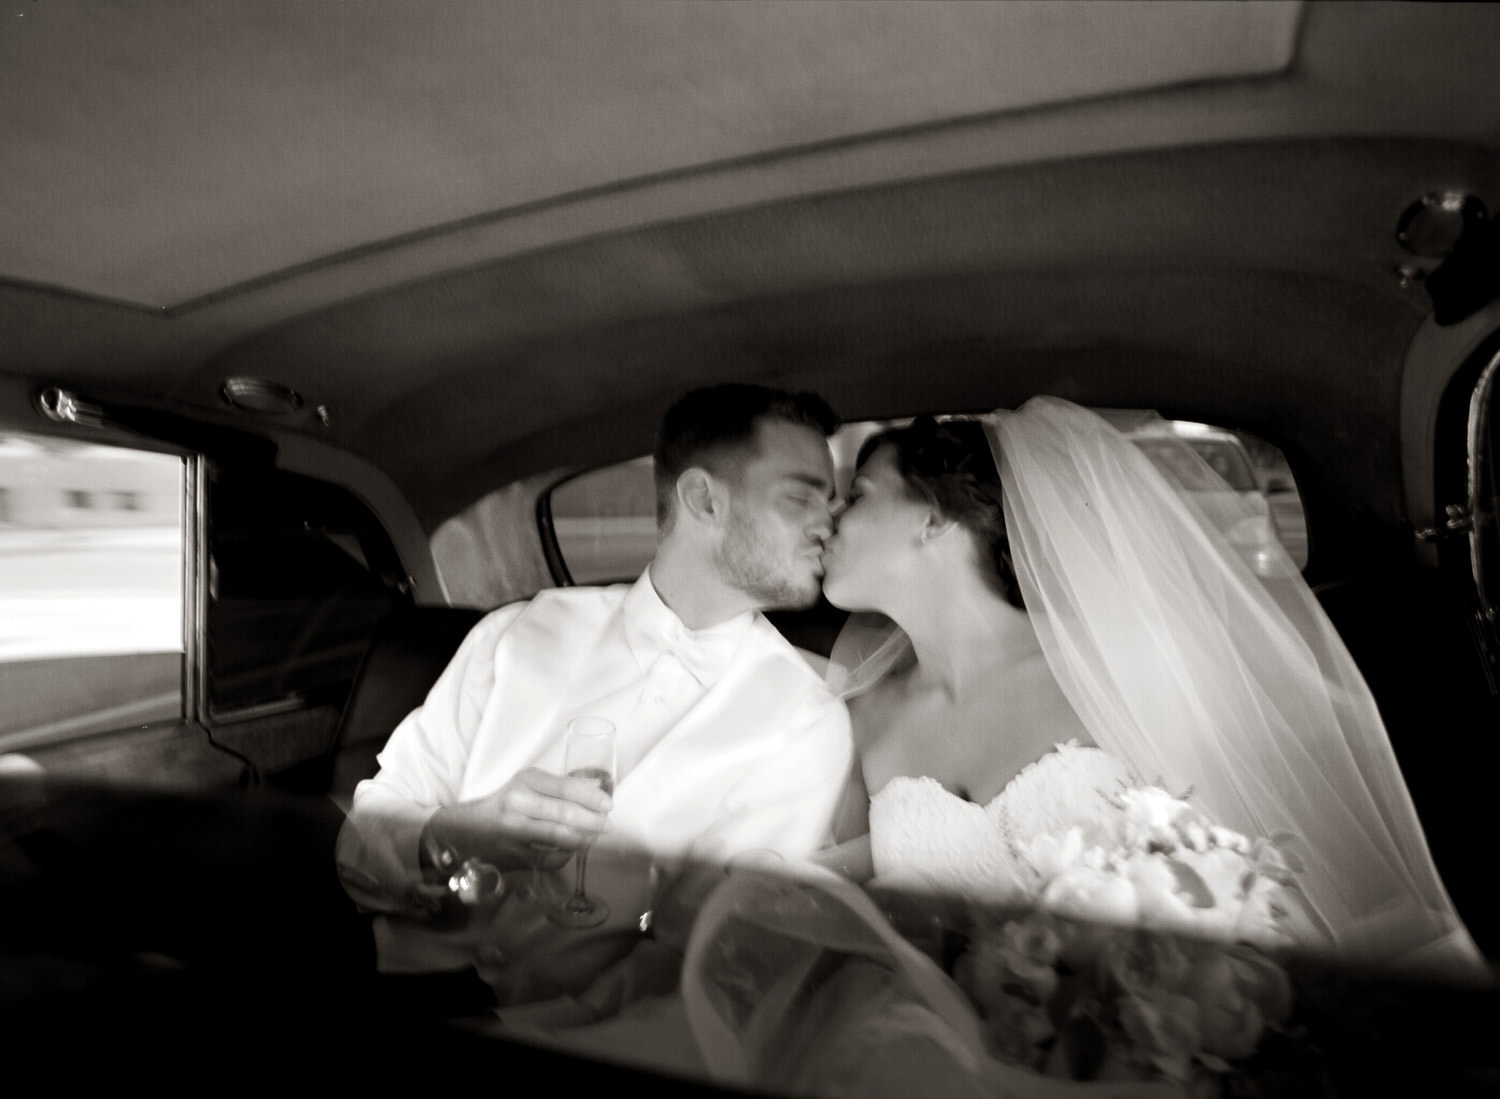 A bride and groom kiss in the back of the car.